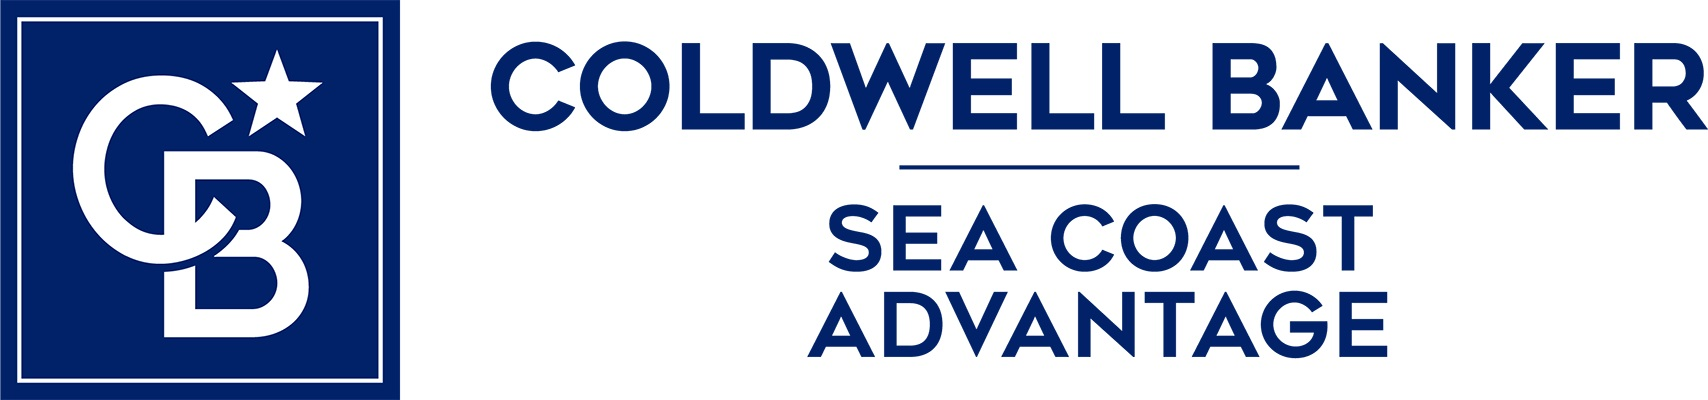 Judy Clary - Coldwell Banker Sea Coast Advantage Realty